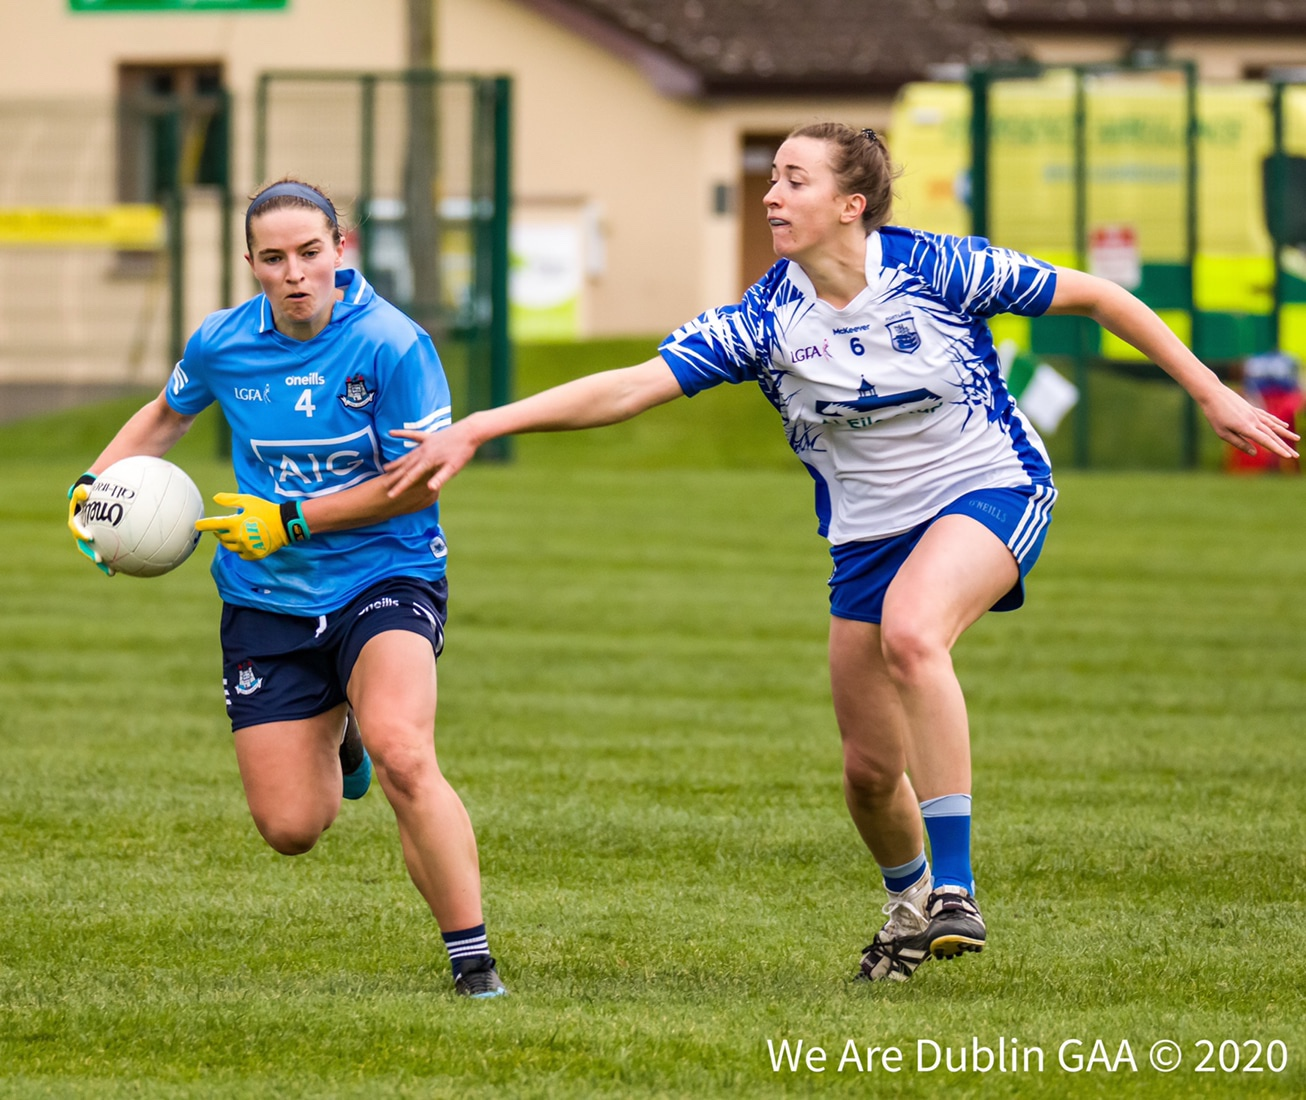 Dublin's Orla Nolan in action against Waterford last November, Nolan is one of five changes for Dublin as the two sides meet again this weekend in a Championship Round 2 fixture.